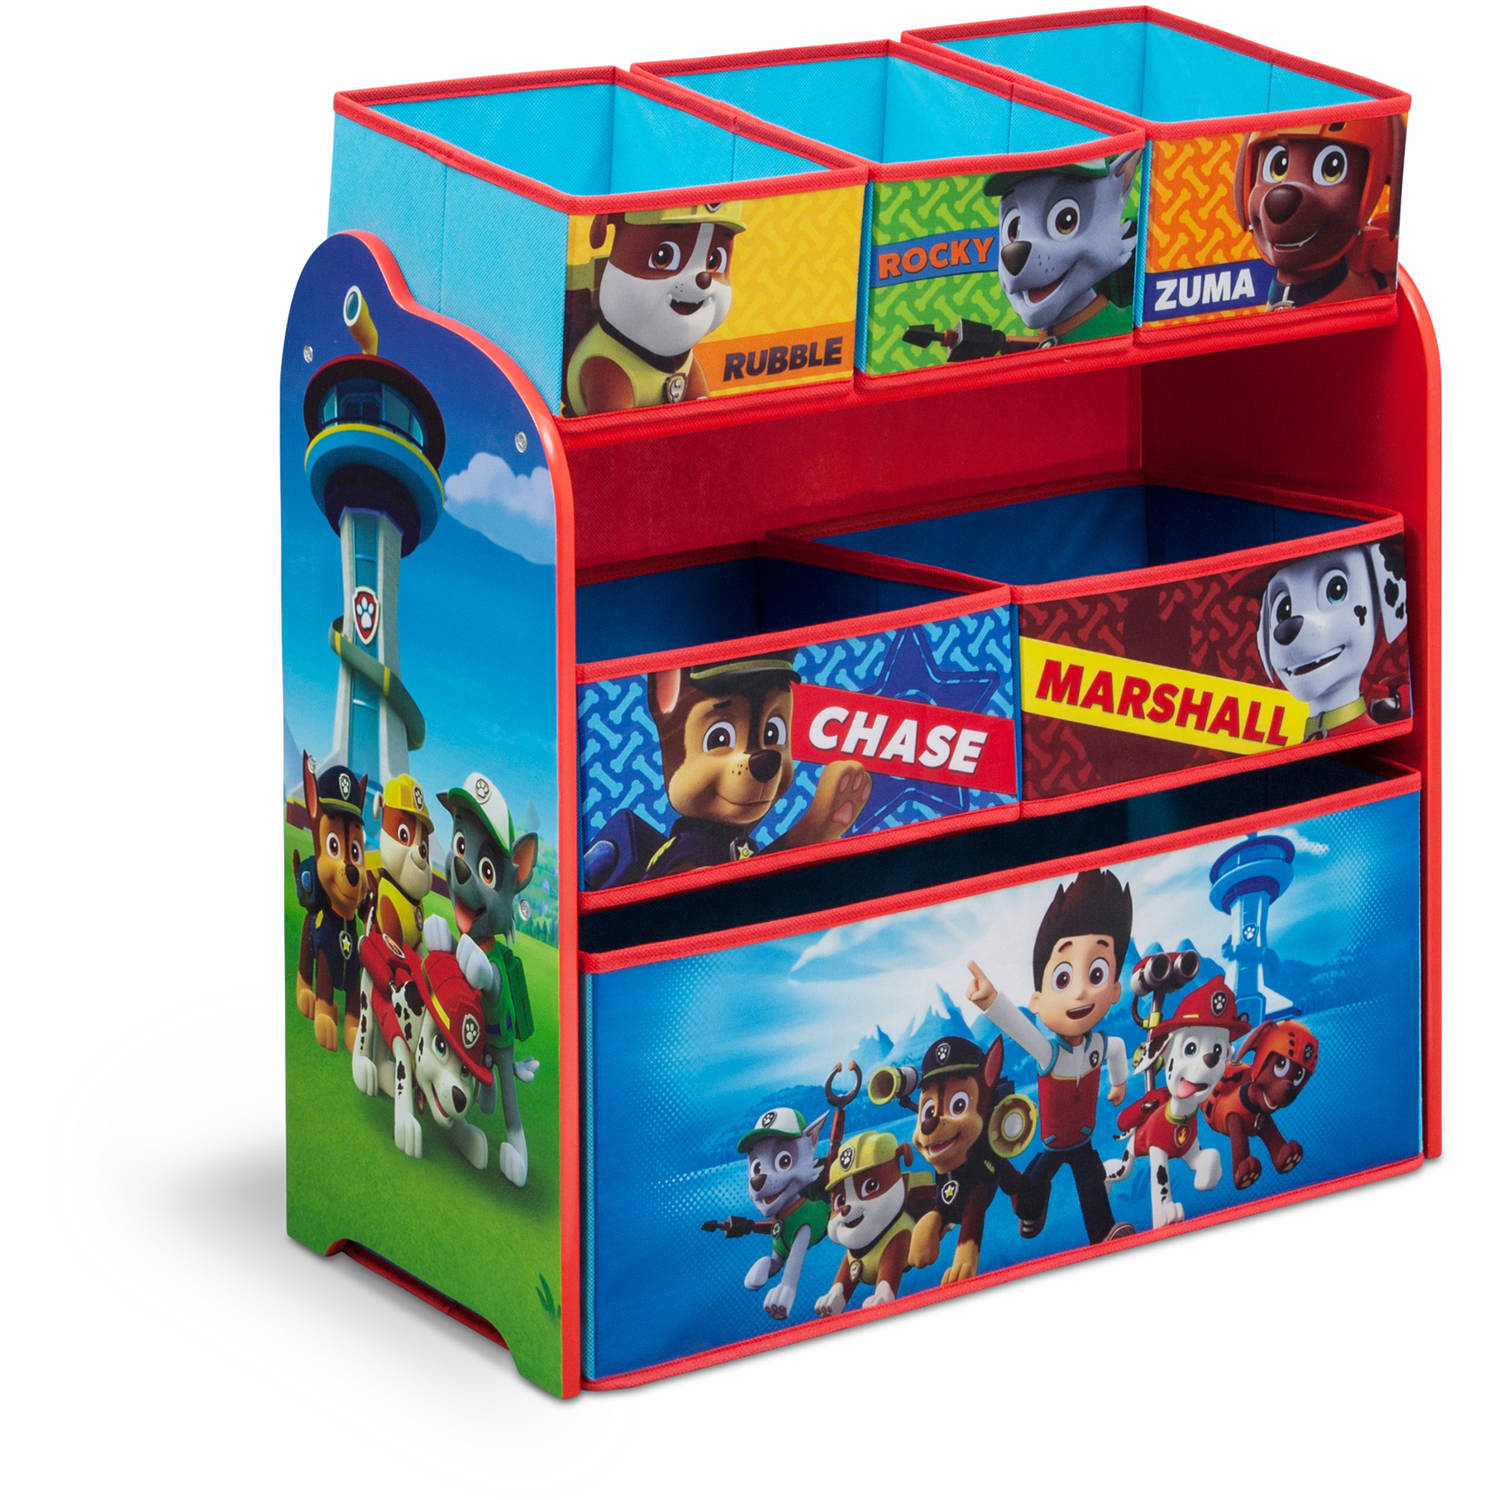 Paw Patrol Kids Toy Organizer Bin Children S Storage Box: Delta Children Paw Patrol Multi Bin Organizer Box Storage